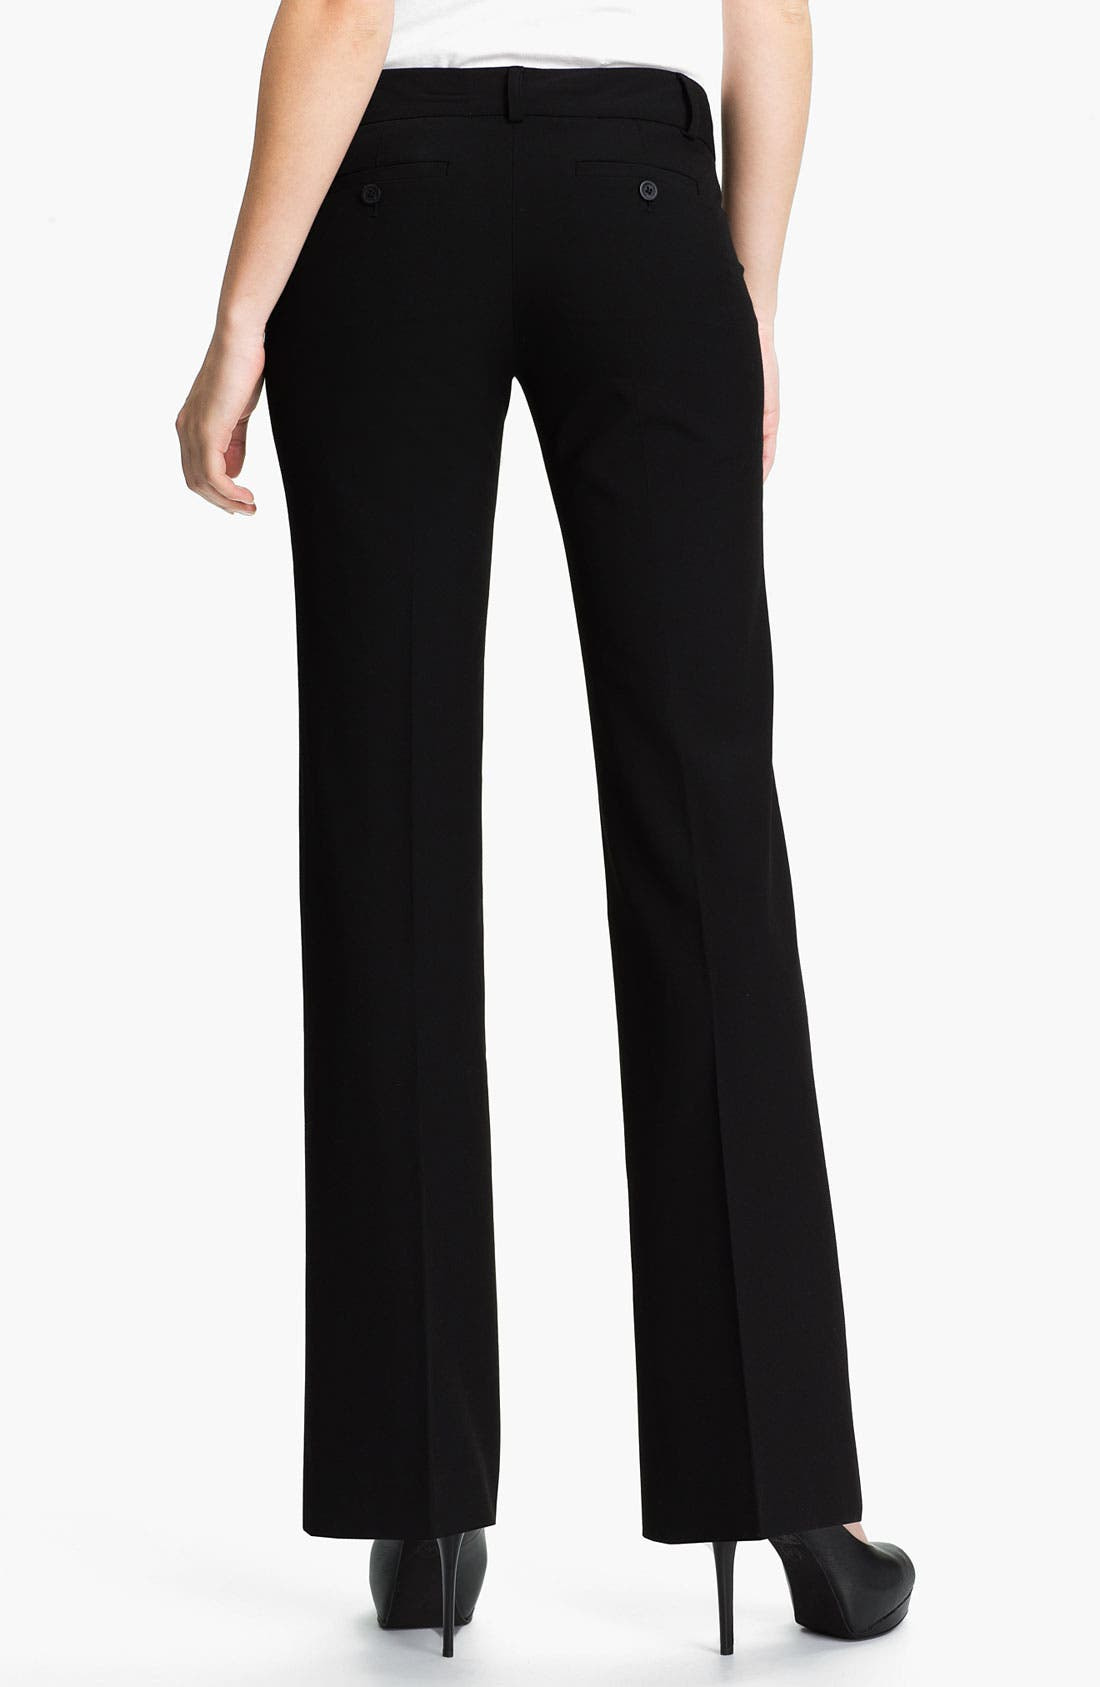 'Gramercy' Flare Leg Pants,                             Alternate thumbnail 4, color,                             001